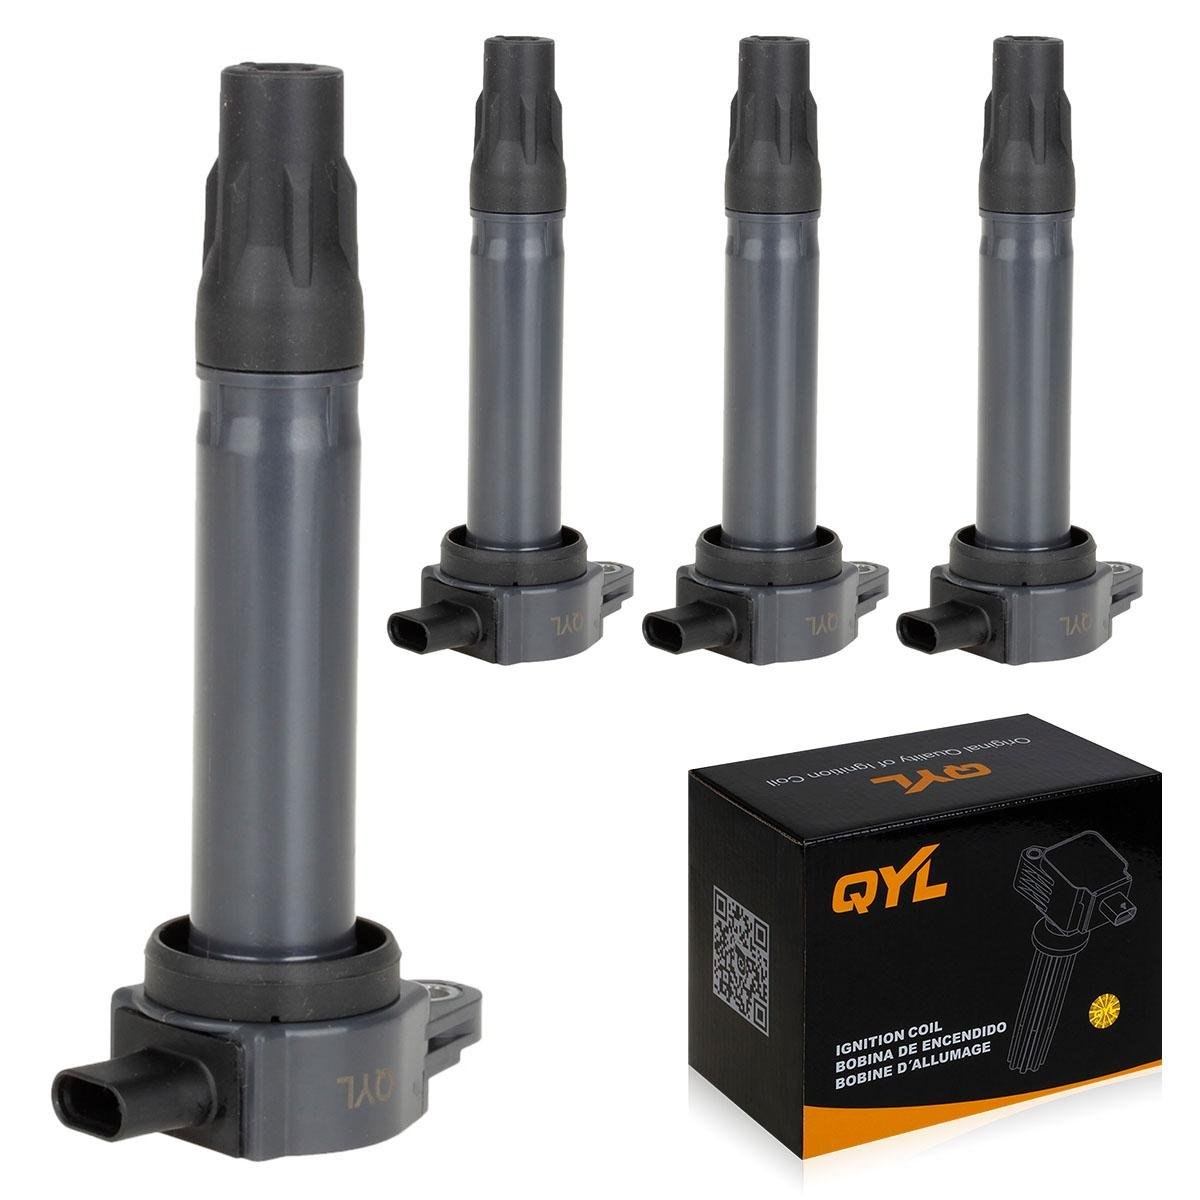 QYL Pack of 4 Ignition Coil for Chrysler Dodge Jeep 200 Cirrus Sebring Avenger Caliber Journey Compass Patriot 1.8L 2.0L 2.4L I4 UF557 5C1644 UF-557